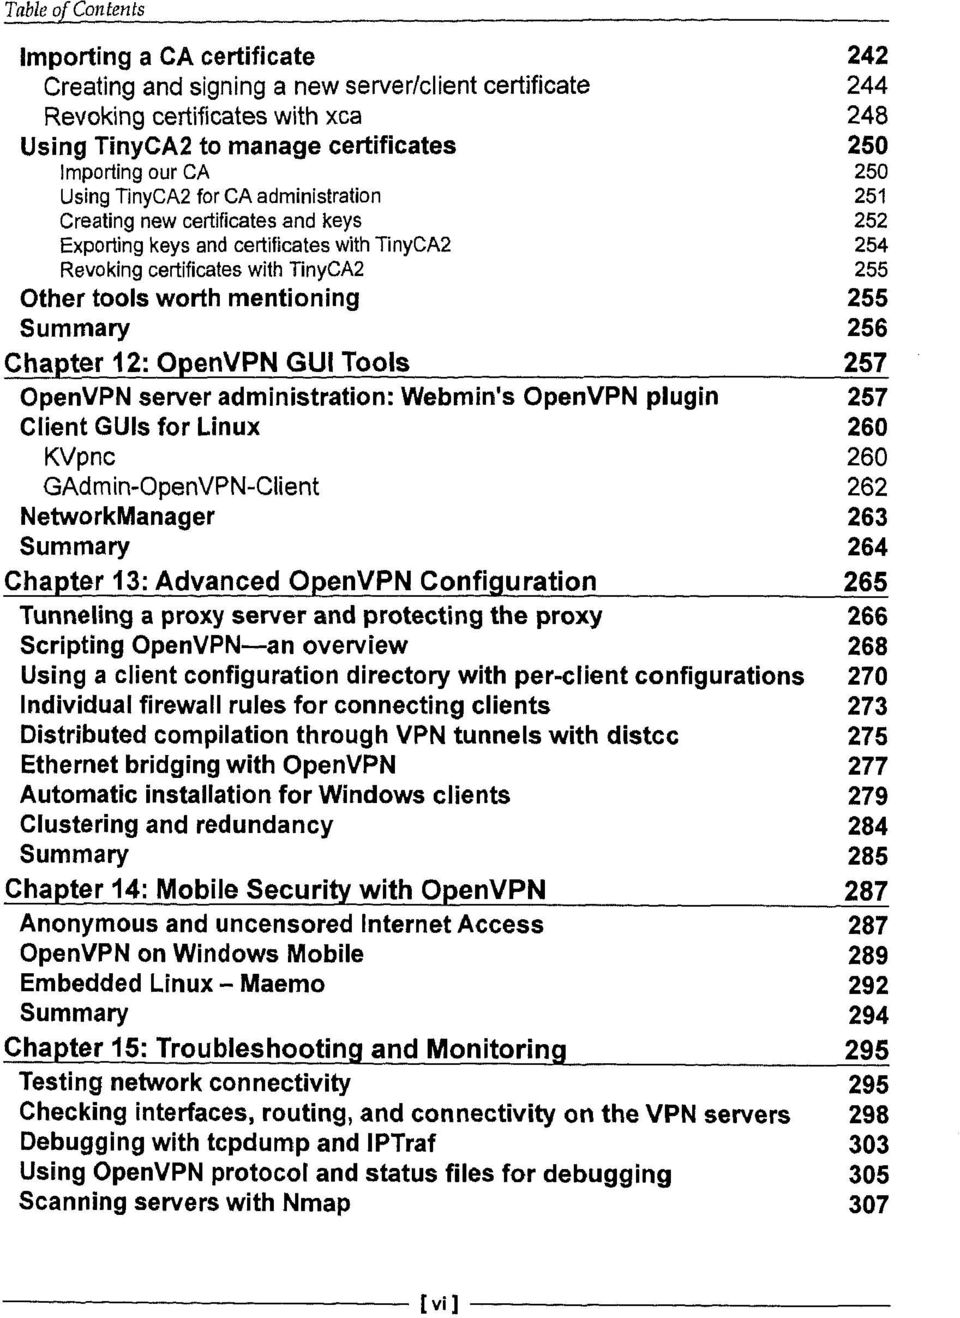 mentioning 255 Summary 256 Chapter 12: OpenVPN GUI Tools 257 OpenVPN server administration: Webmin's OpenVPN plugin 257 Client GUIs for Linux 260 KVpnc 260 GAdmin-OpenVPN-Client 262 NetworkManager